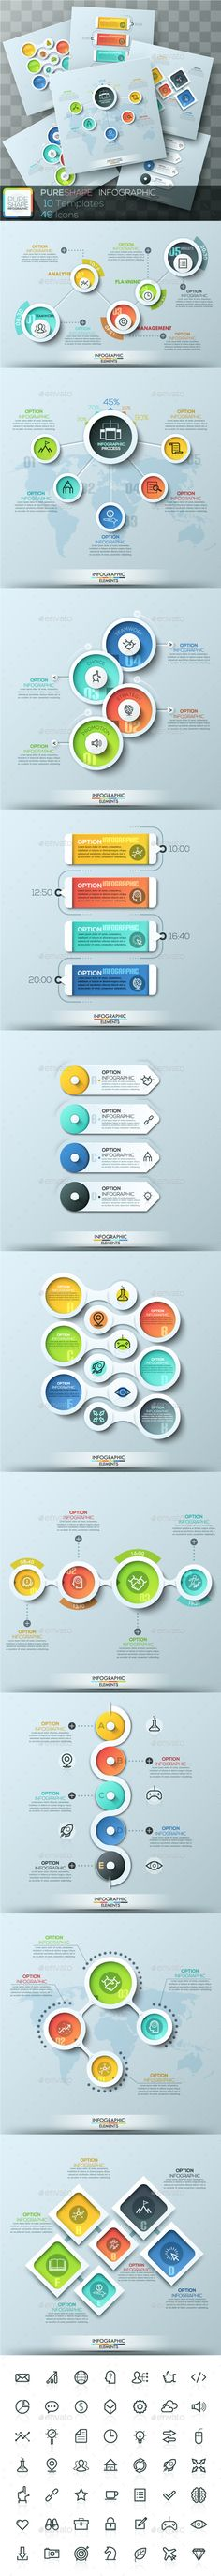 Pure Shape Infographic Templates. Download here: http://graphicriver.net/item/pure-shape-infographic/15819052?ref=ksioks